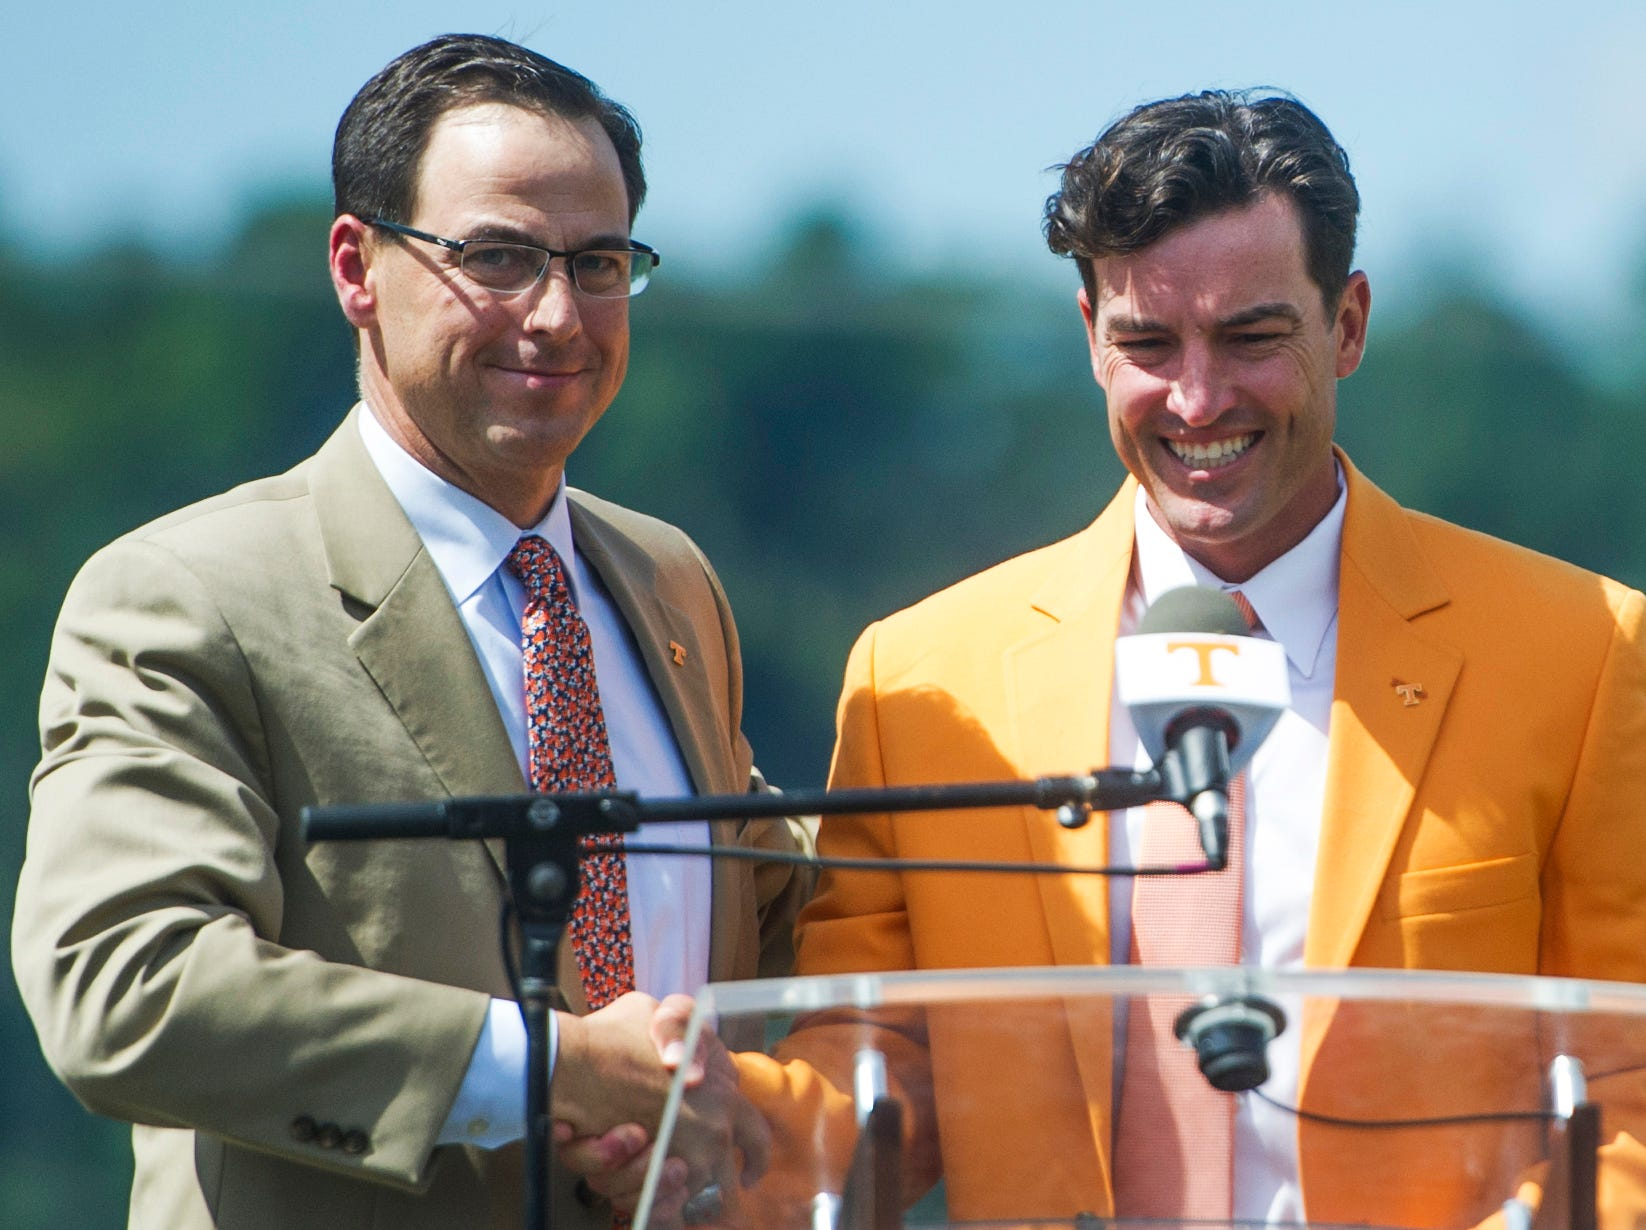 At left John Currie, Tennessee vice chancellor and director of athletics shakes new University of Tennessee Baseball Head Coach Tony Vitello's hand at a press conference introducing him to the media, at Lindsey Nelson Stadium on Friday June 9, 2017.